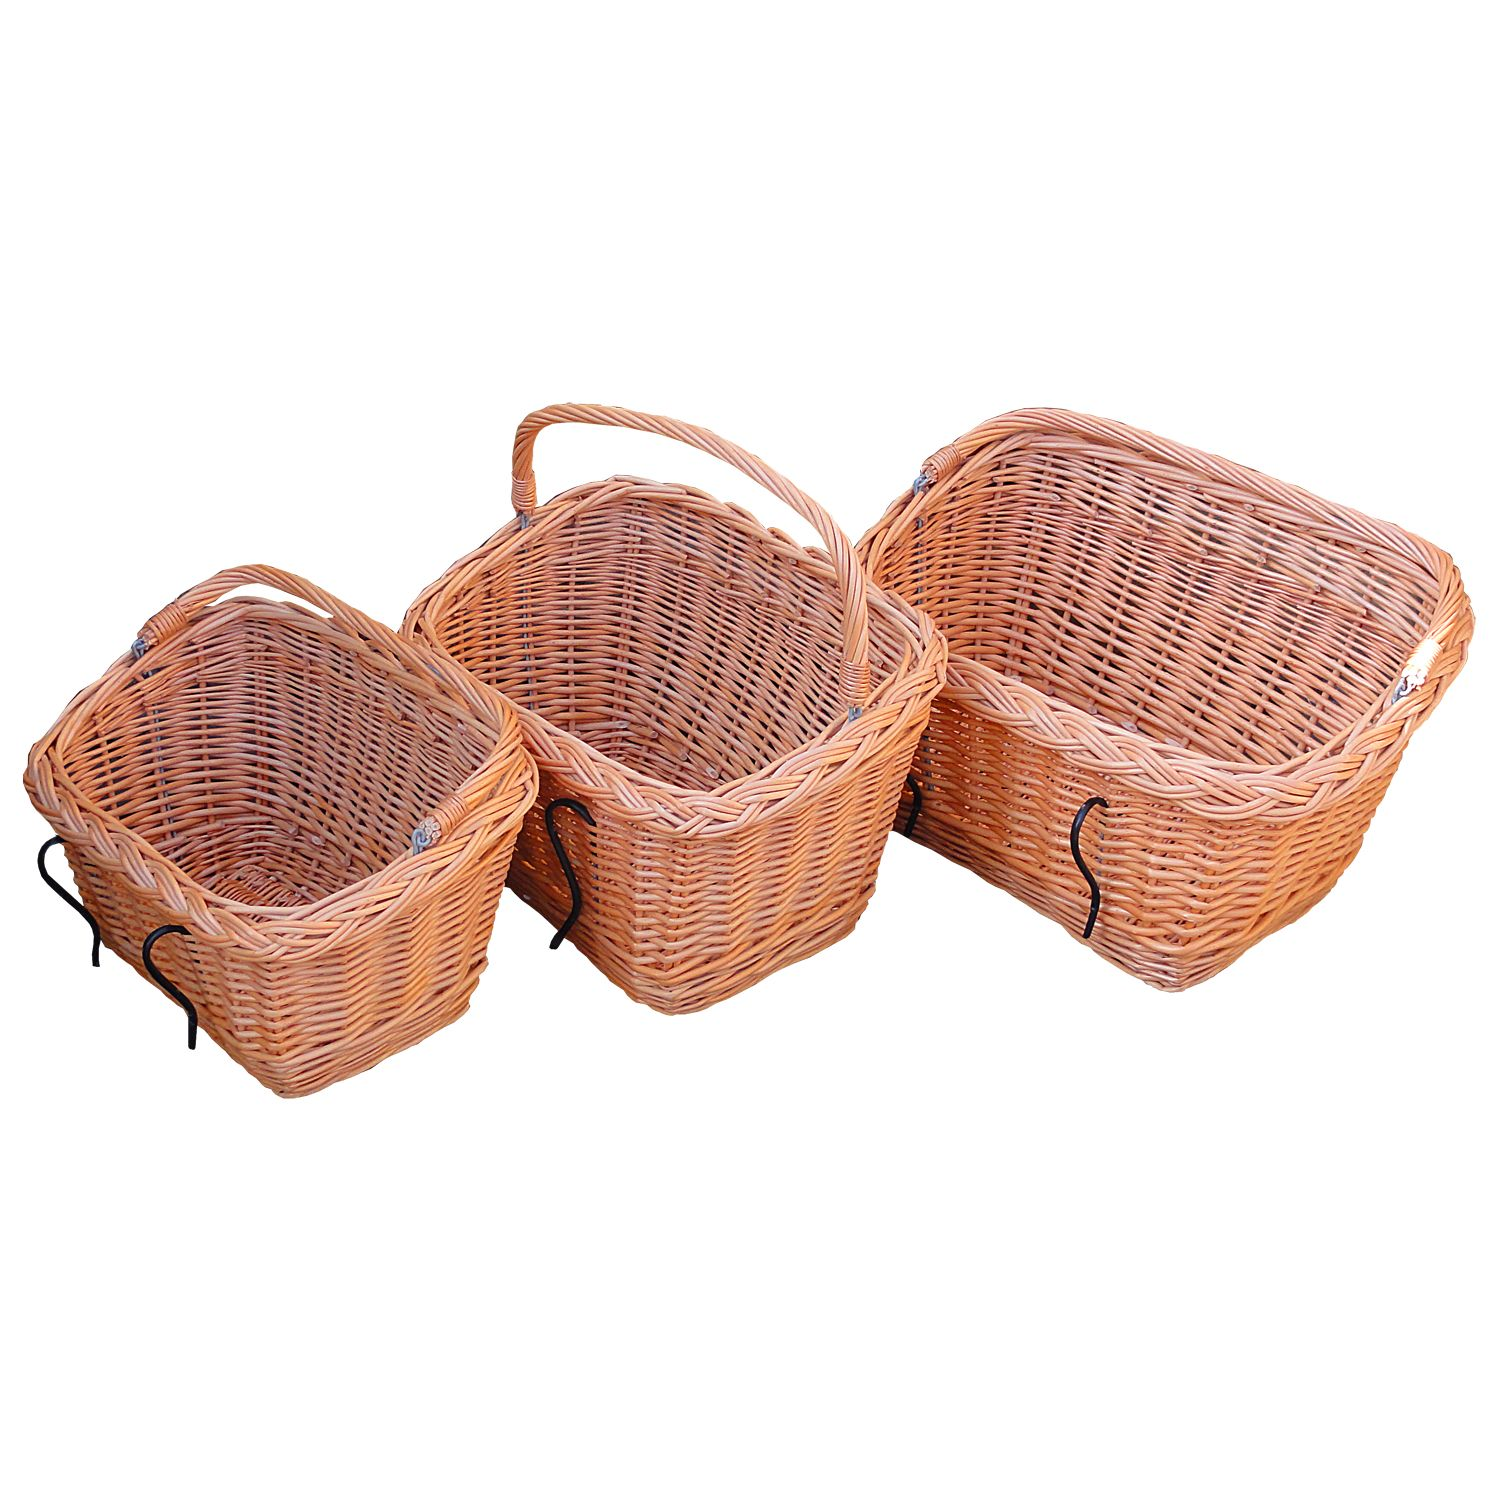 Wicker basket for bicycles